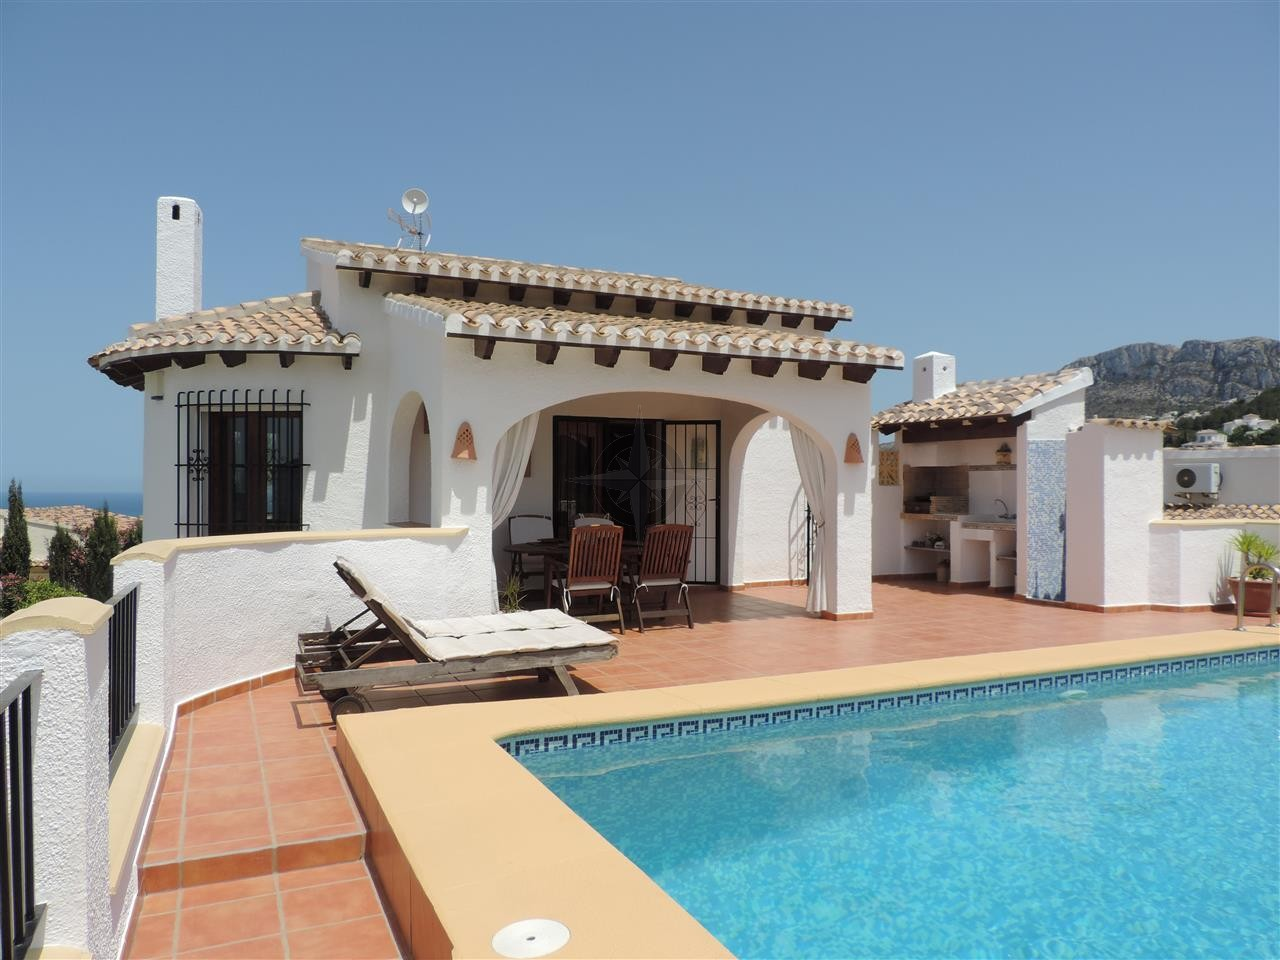 Beautiful Villa With Separate Apartment In Monte Pego 4 Bedrooms 4 Bathrooms